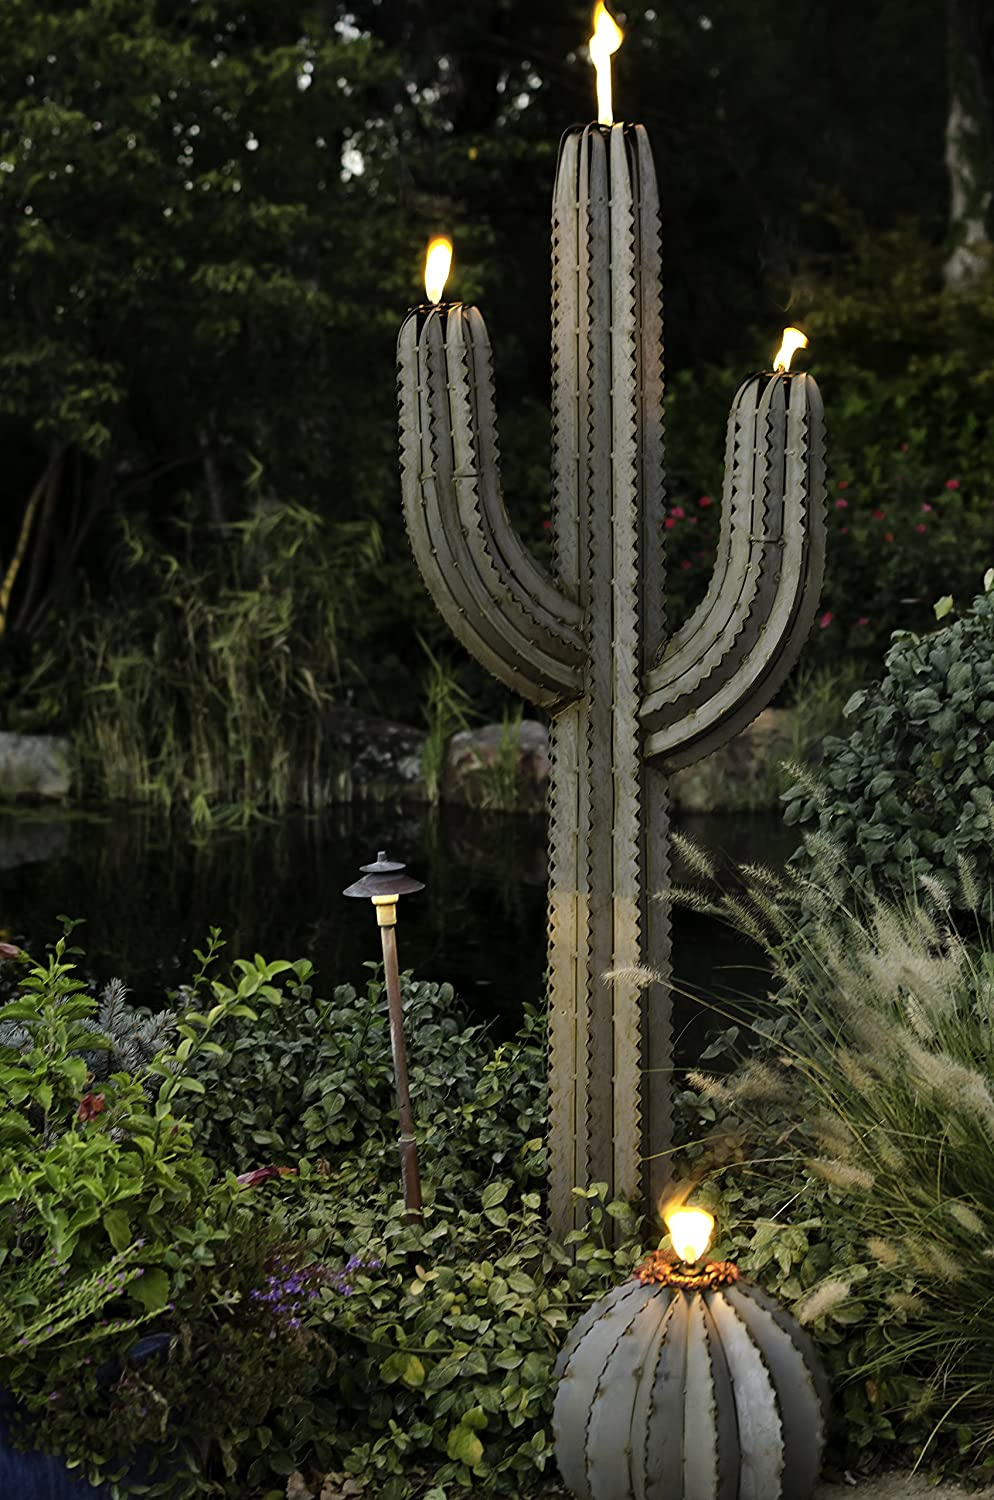 outdoor torch lighting. Desert Steel Saguaro Cactus - Tiki Torch Art Stands 5 Ft. Tall: Amazon.co.uk: Garden \u0026 Outdoors Outdoor Lighting 0